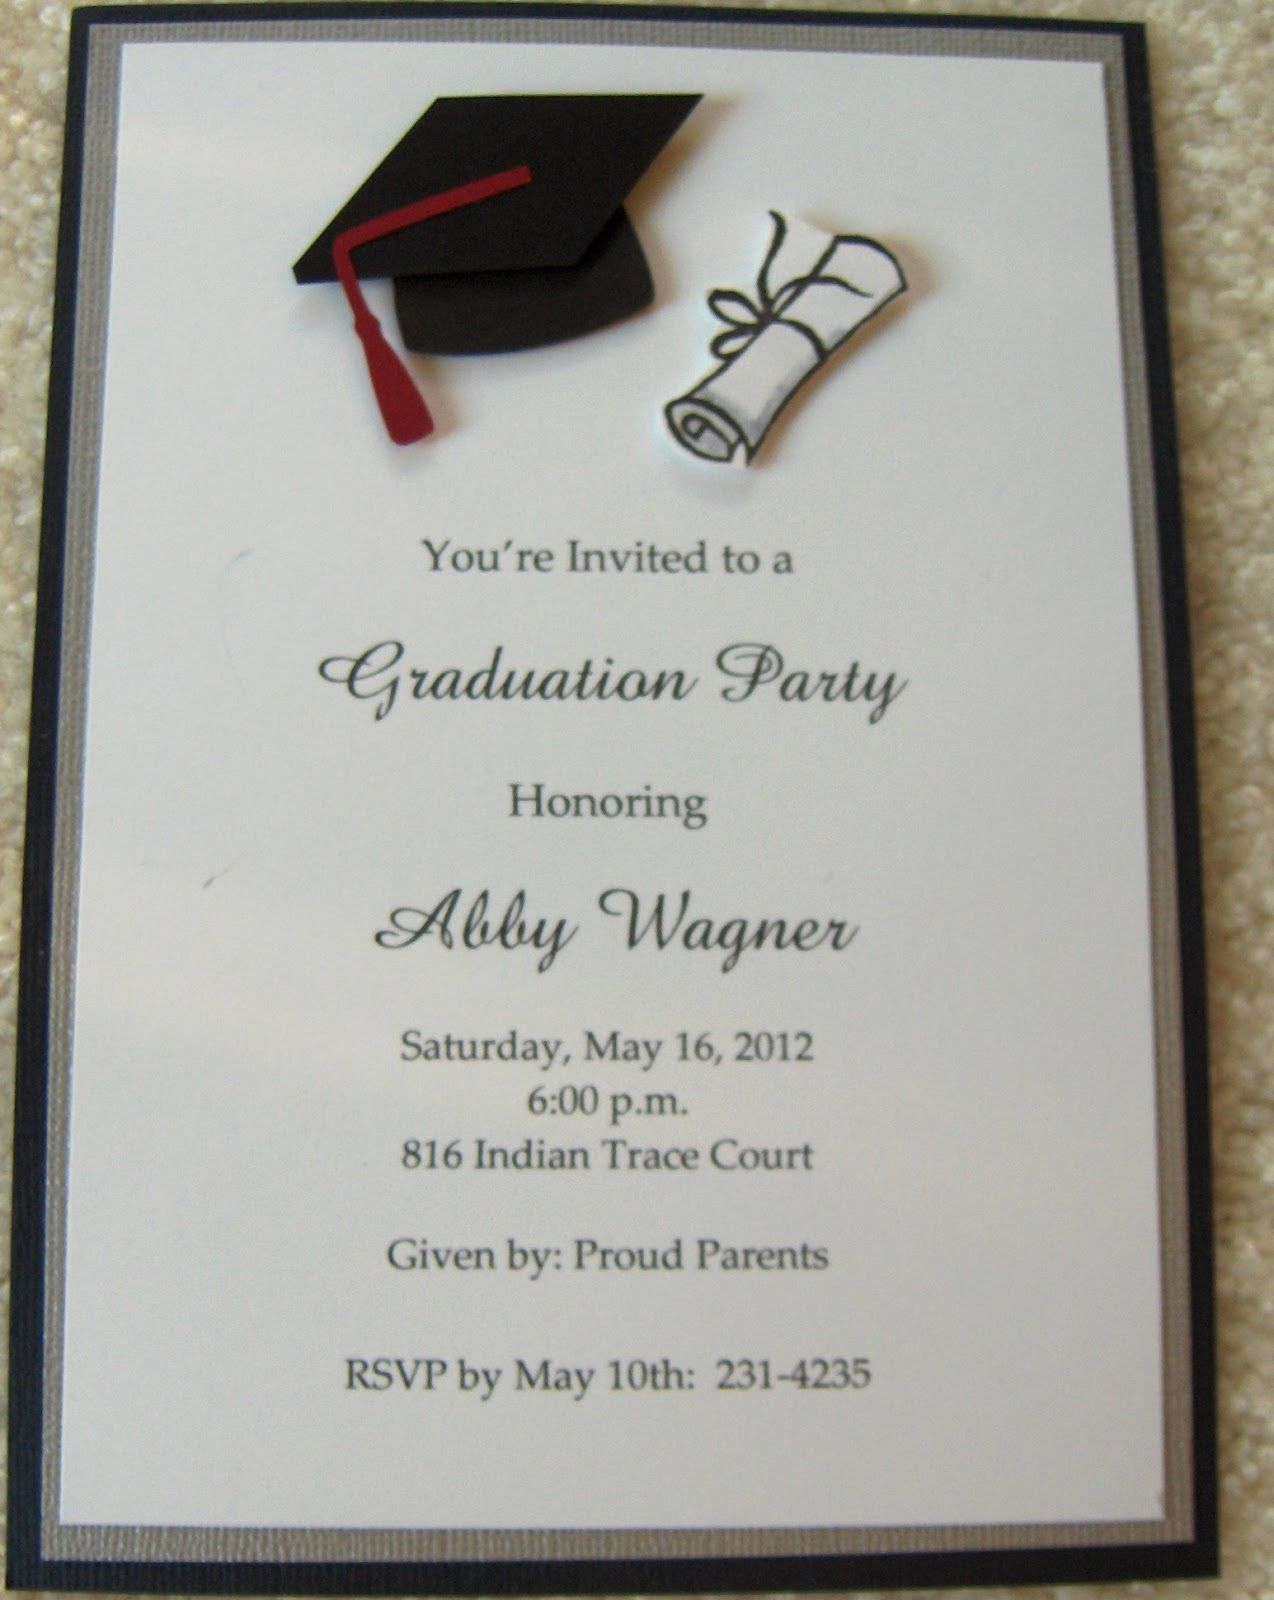 graduation invitations - google search | graduation | pinterest, Party invitations